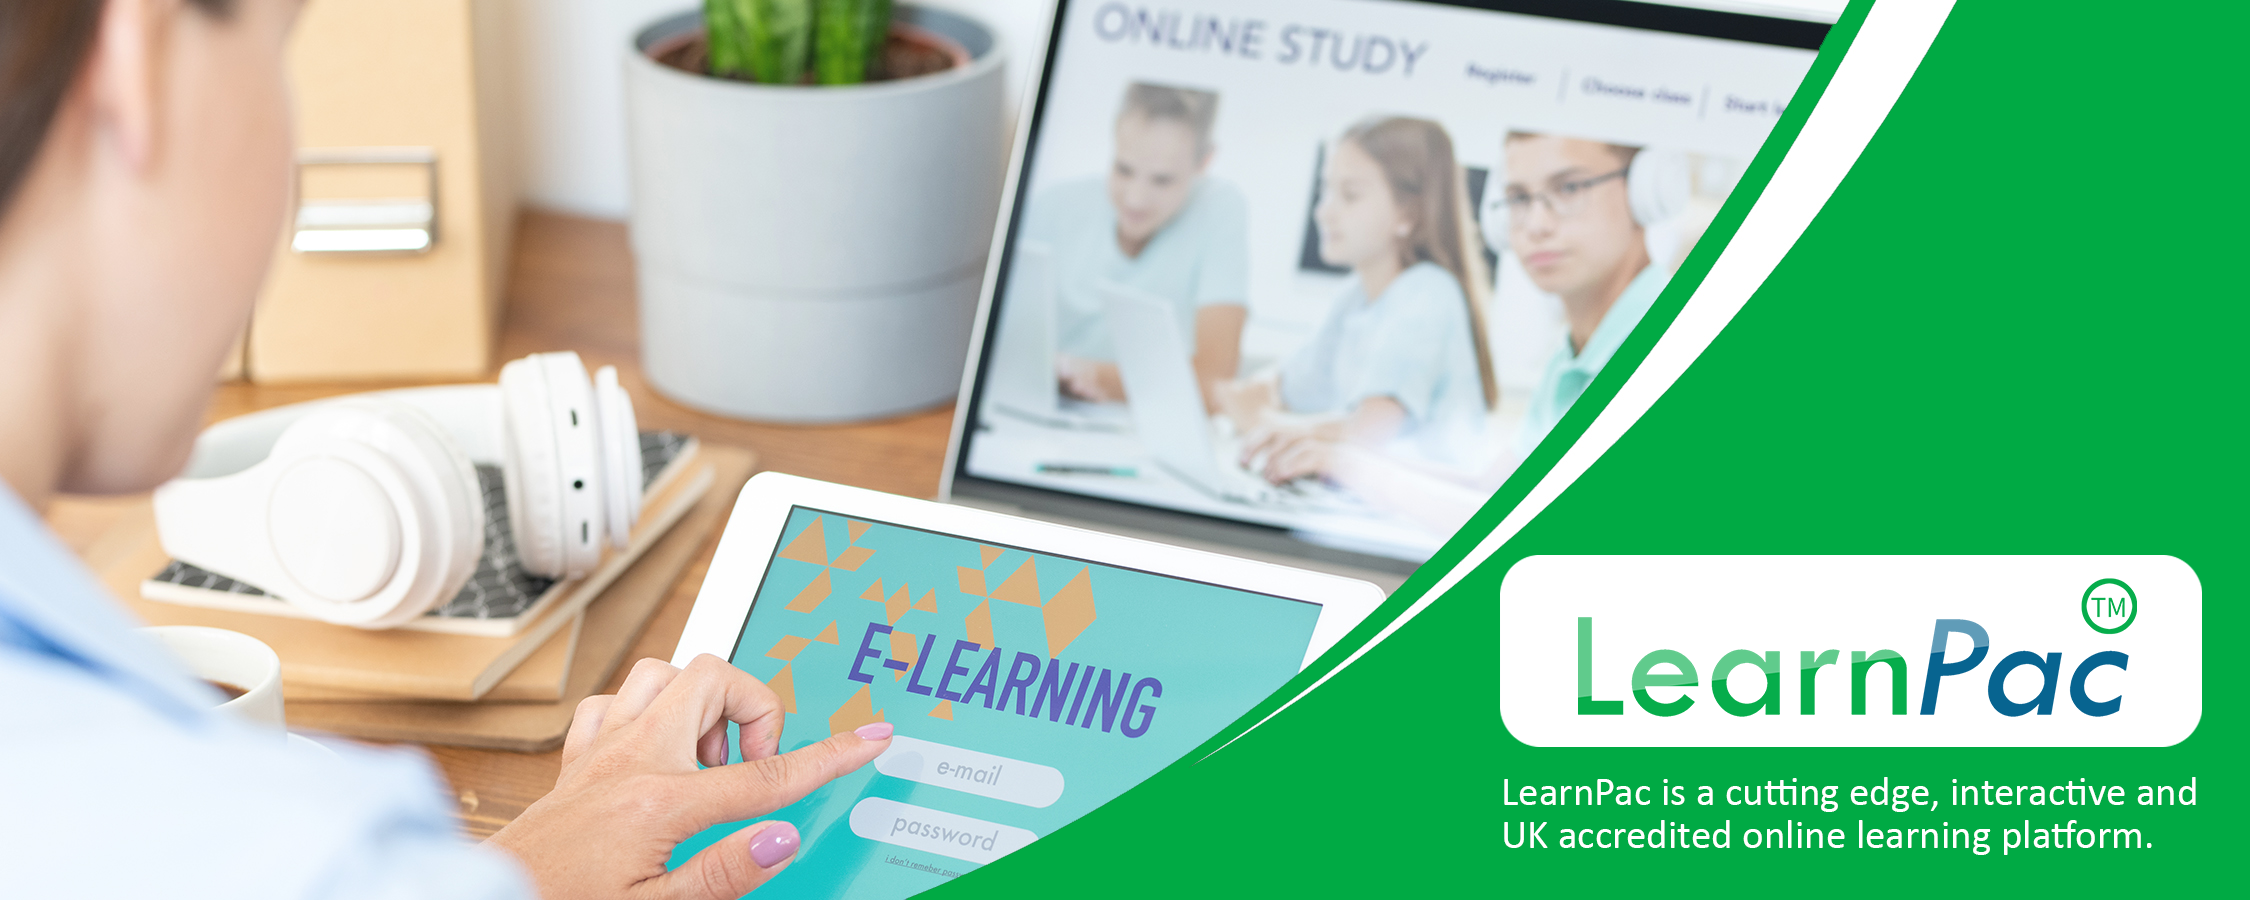 Food Safety Training - Online Learning Courses - E-Learning Courses - LearnPac Systems UK -